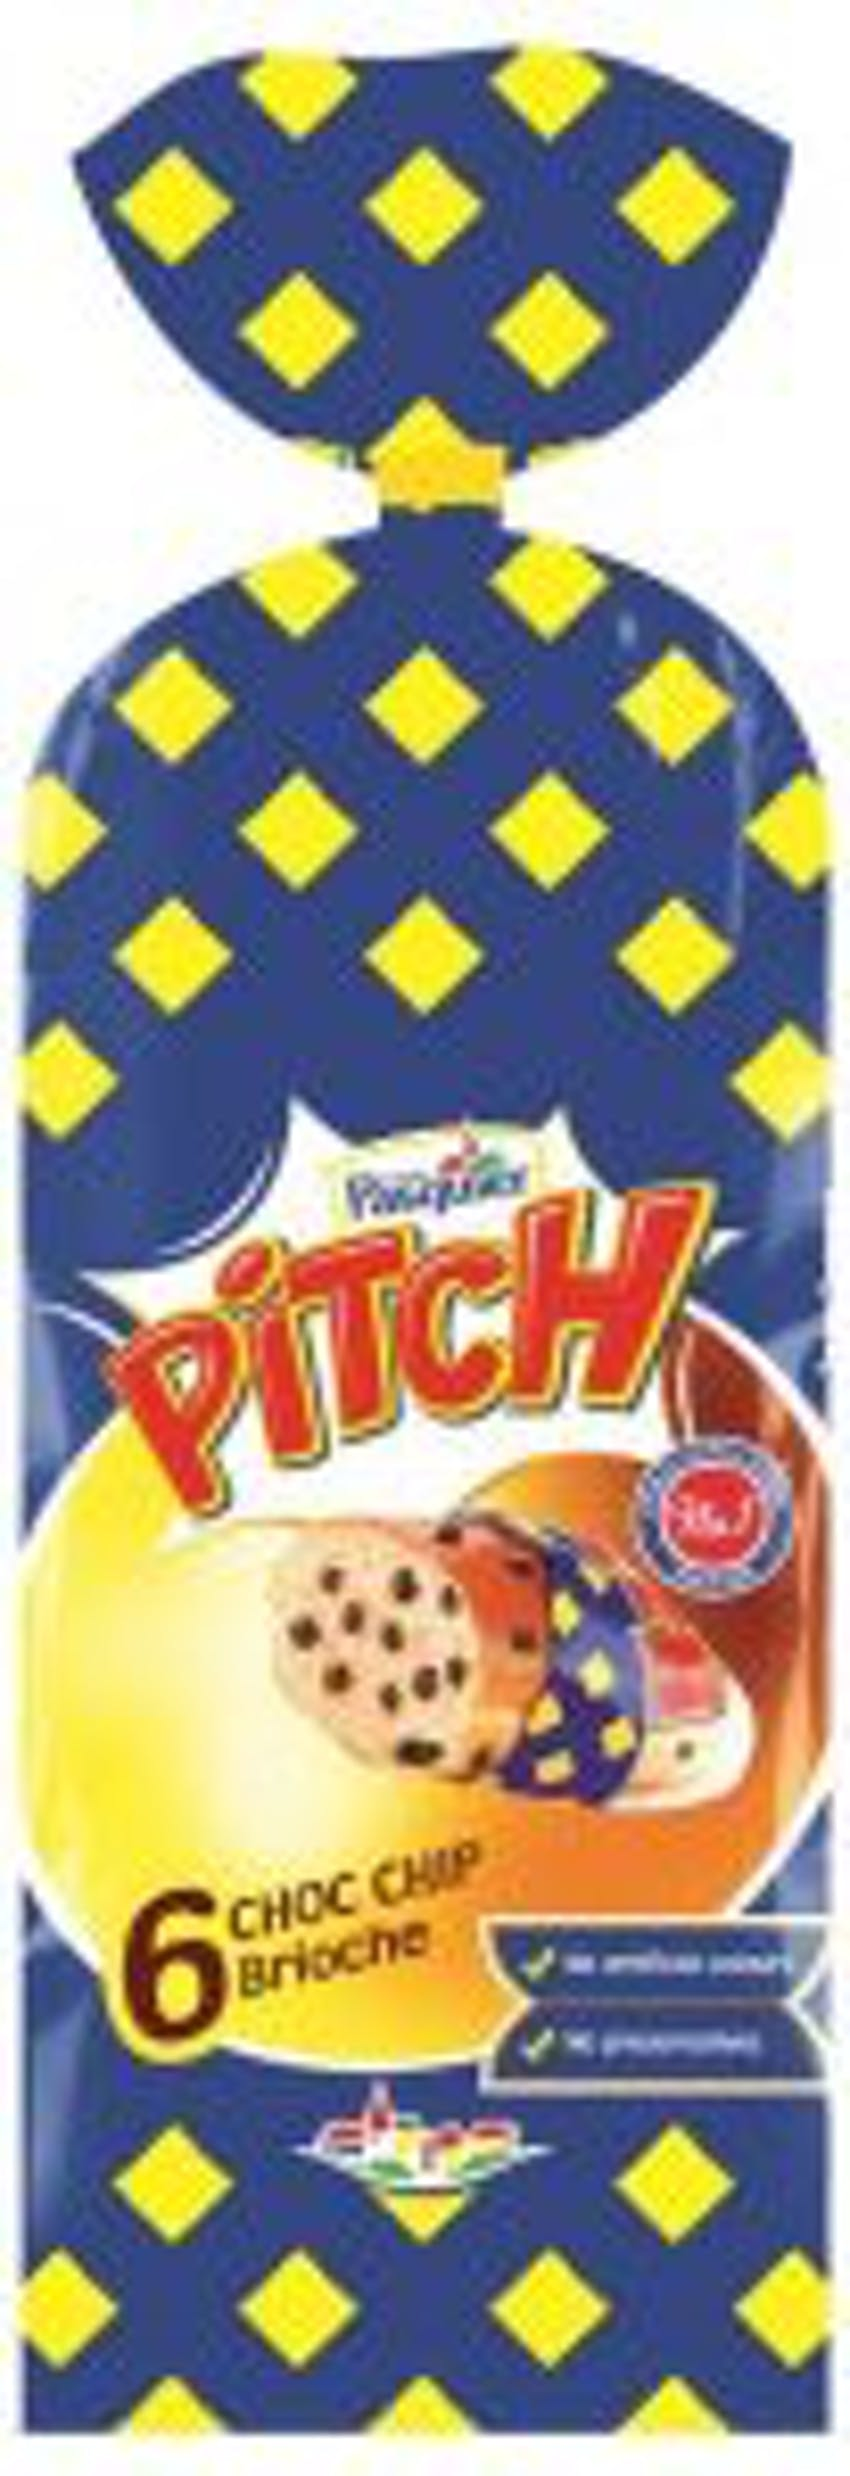 brioche pasquier brioche chocolate chip packet